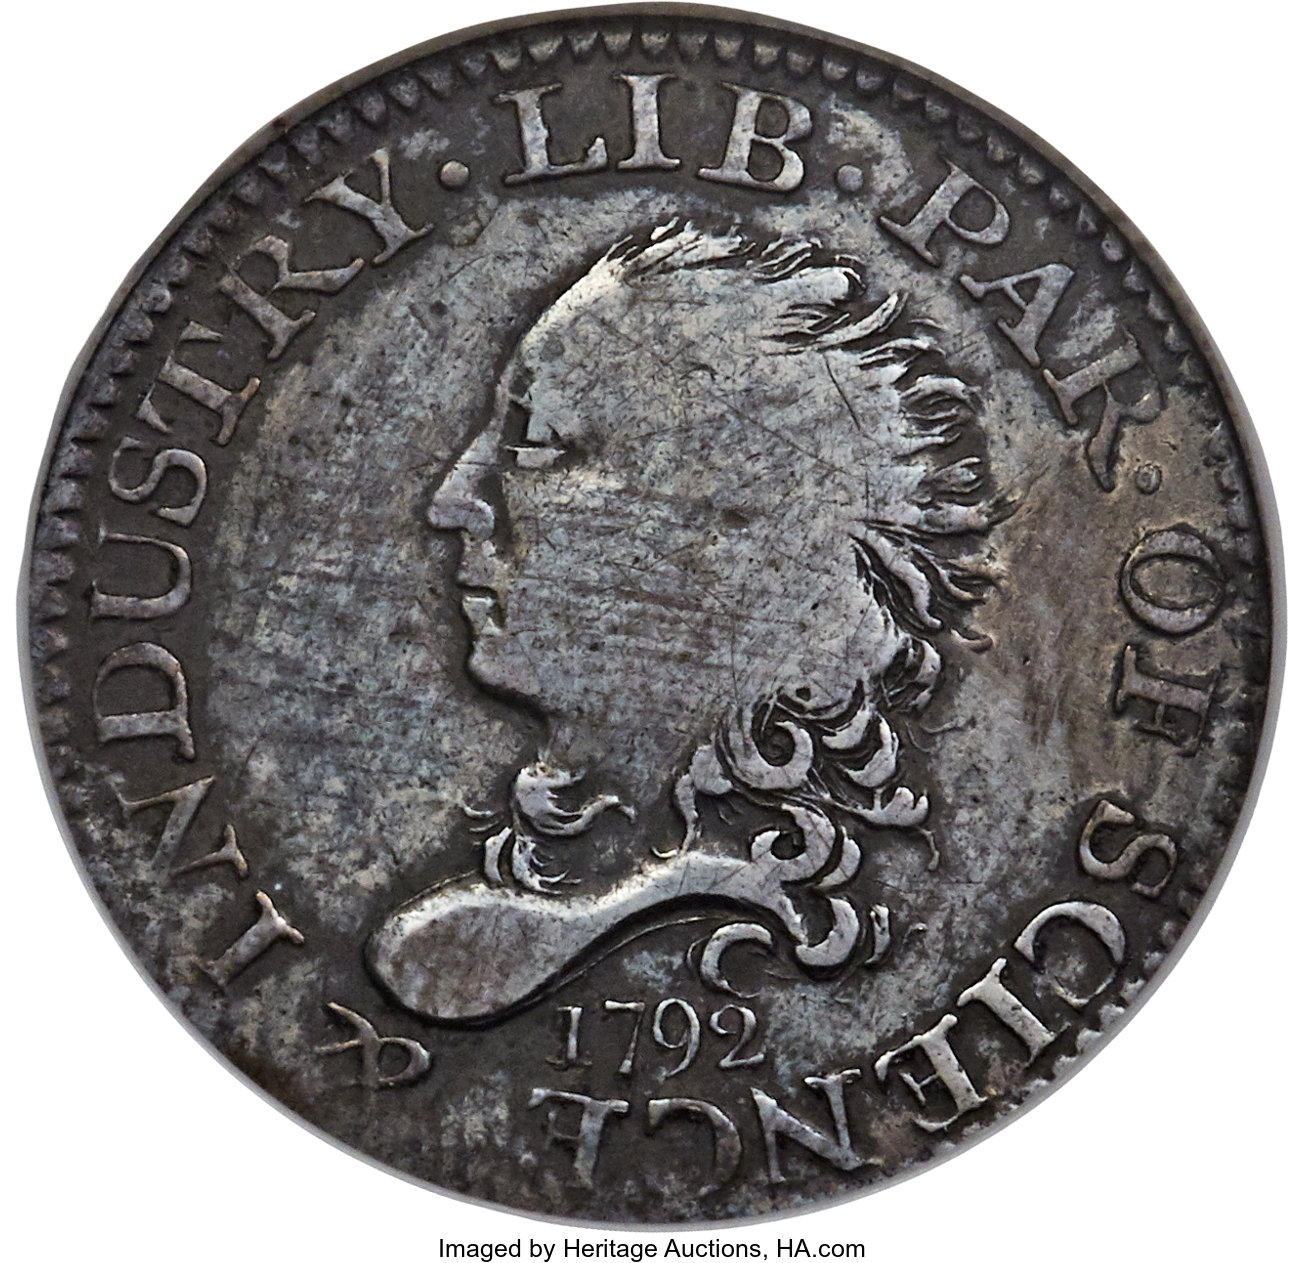 main image for Poulus collection offered at Long Beach this week features affordable 1792 half disme among other rarities